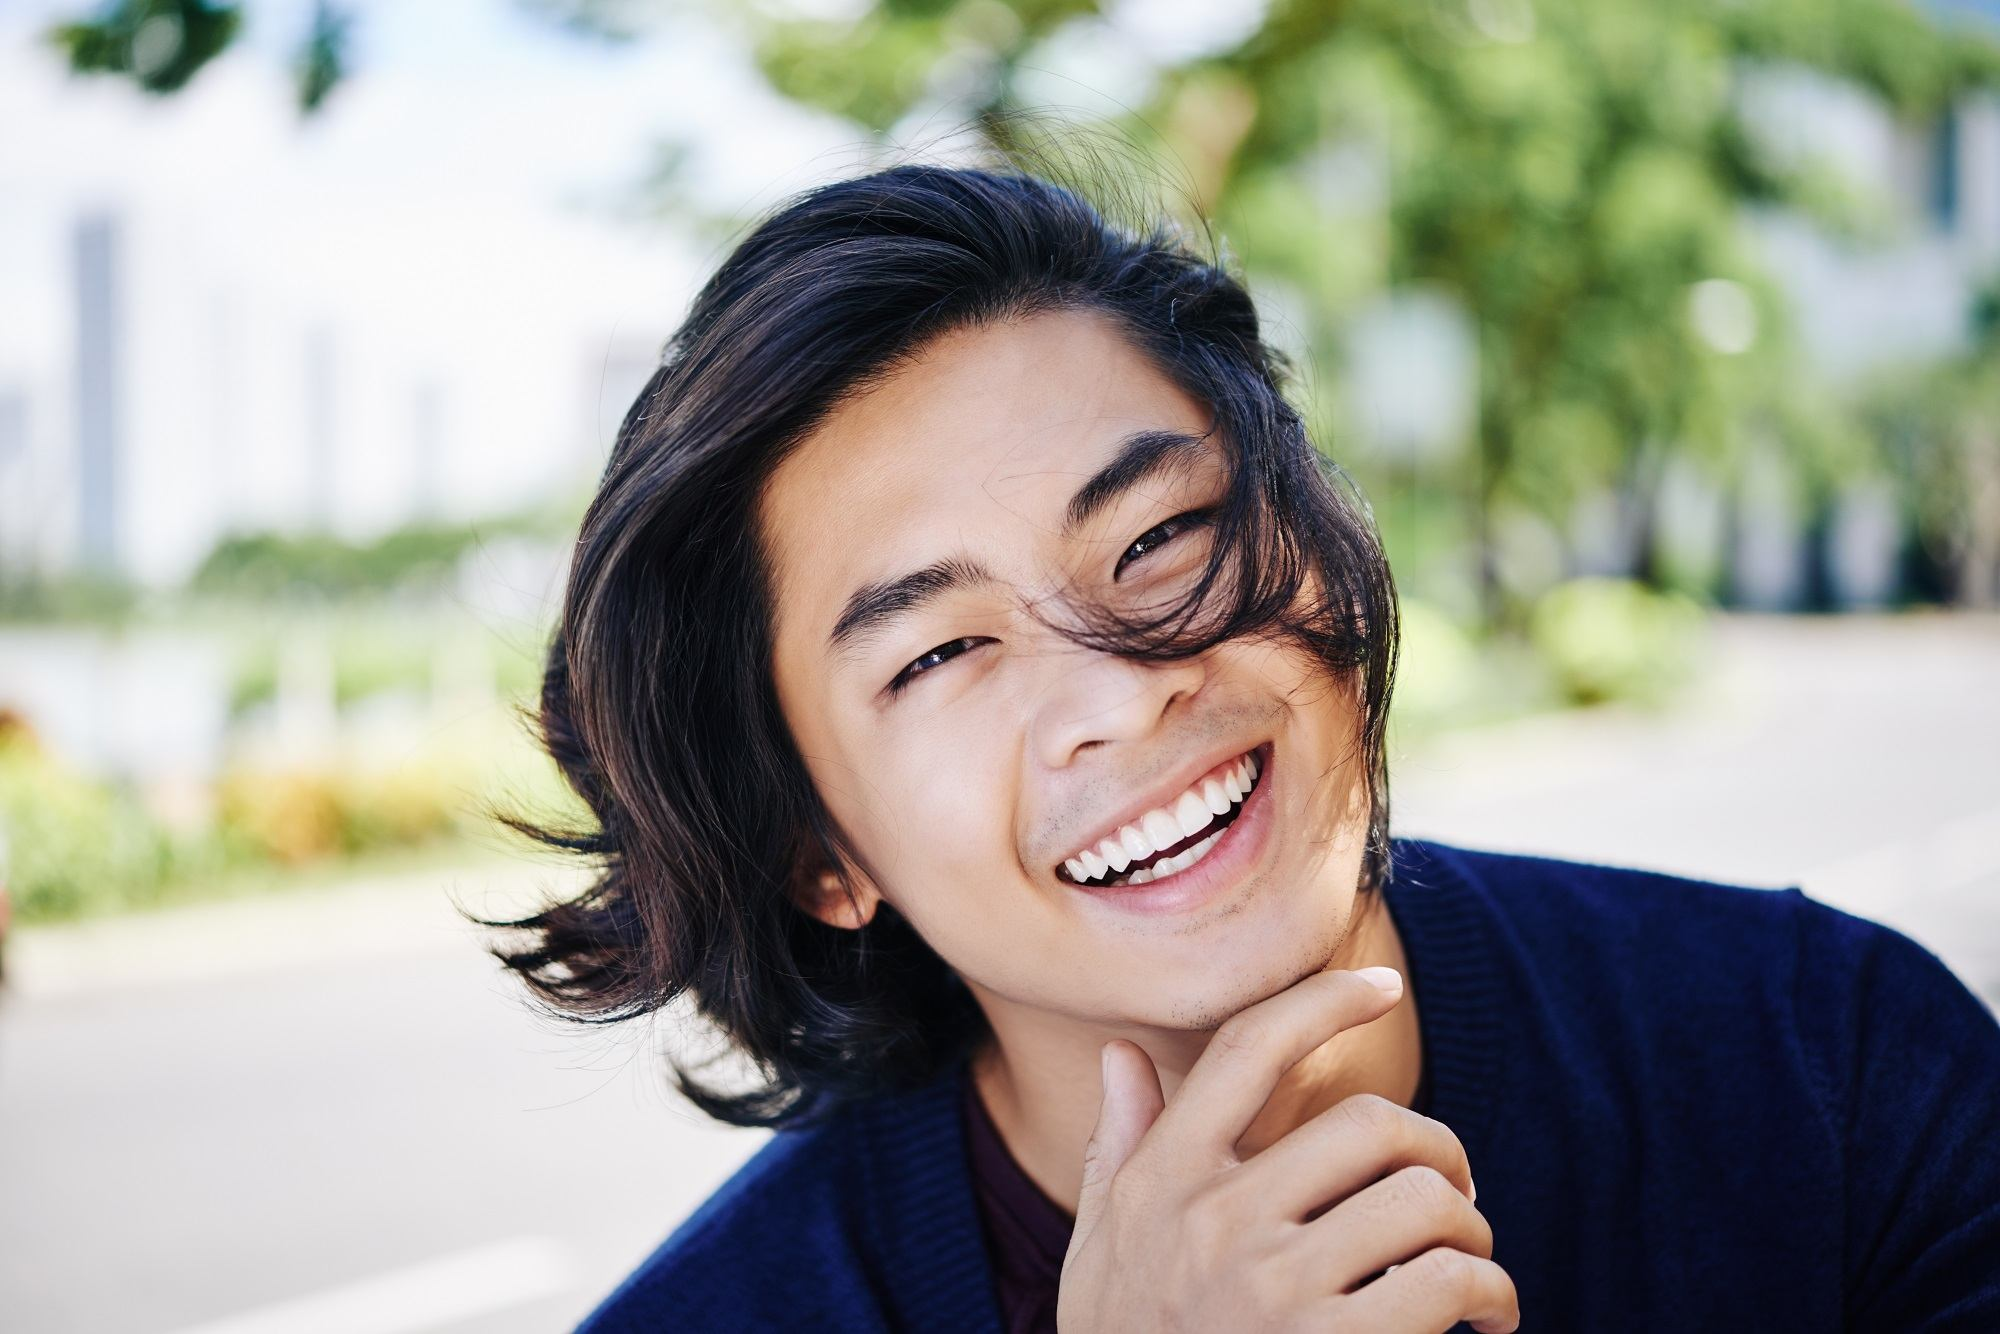 Magnificent 14 Best Asian Hairstyles Men Can Try In 2020 All Things Hair Schematic Wiring Diagrams Phreekkolirunnerswayorg